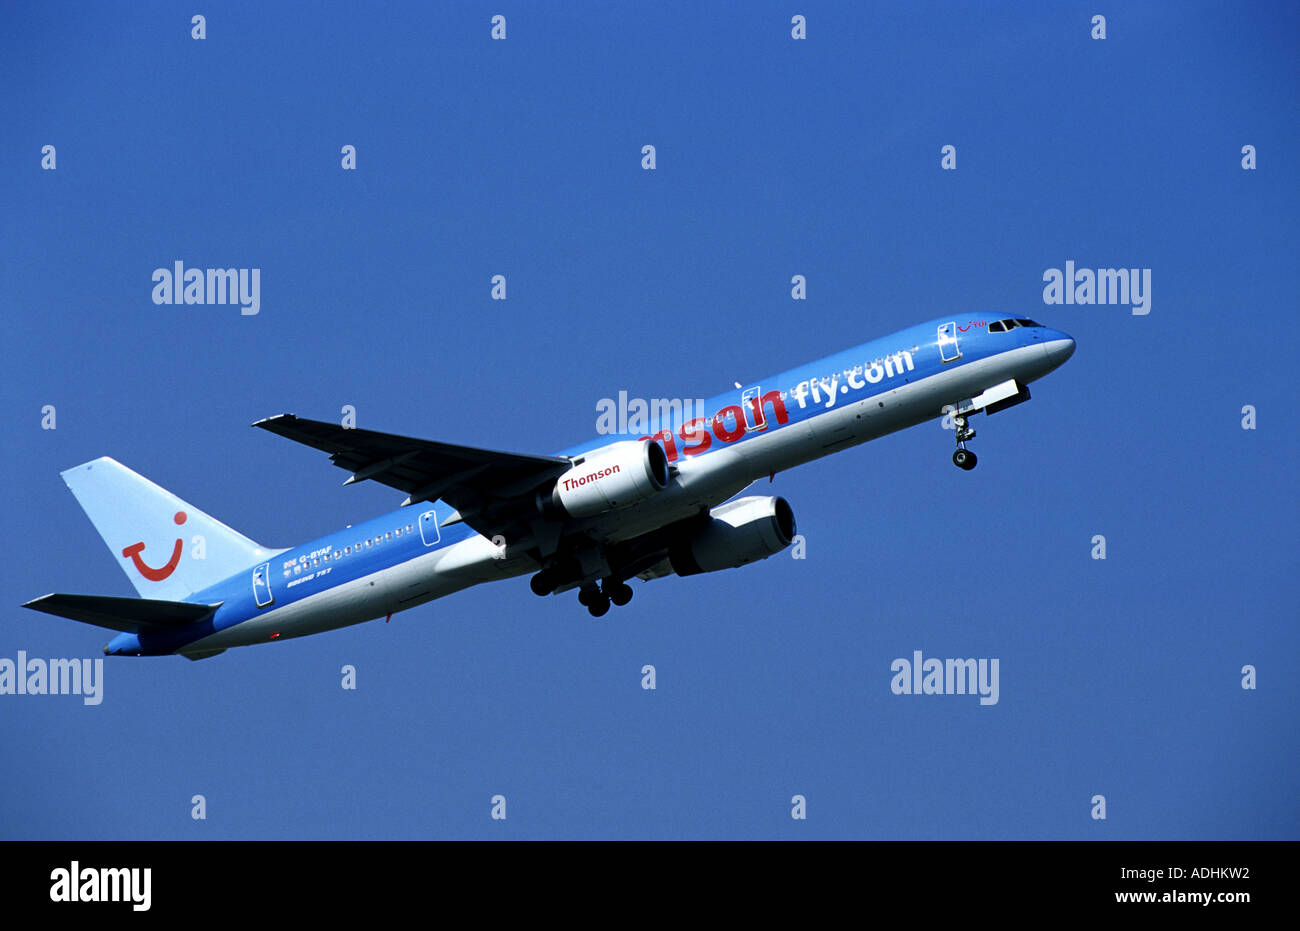 Thomson Boeing 757 aircraft taking off from Birmingham International Airport, West Midlands, England, UK Stock Photo